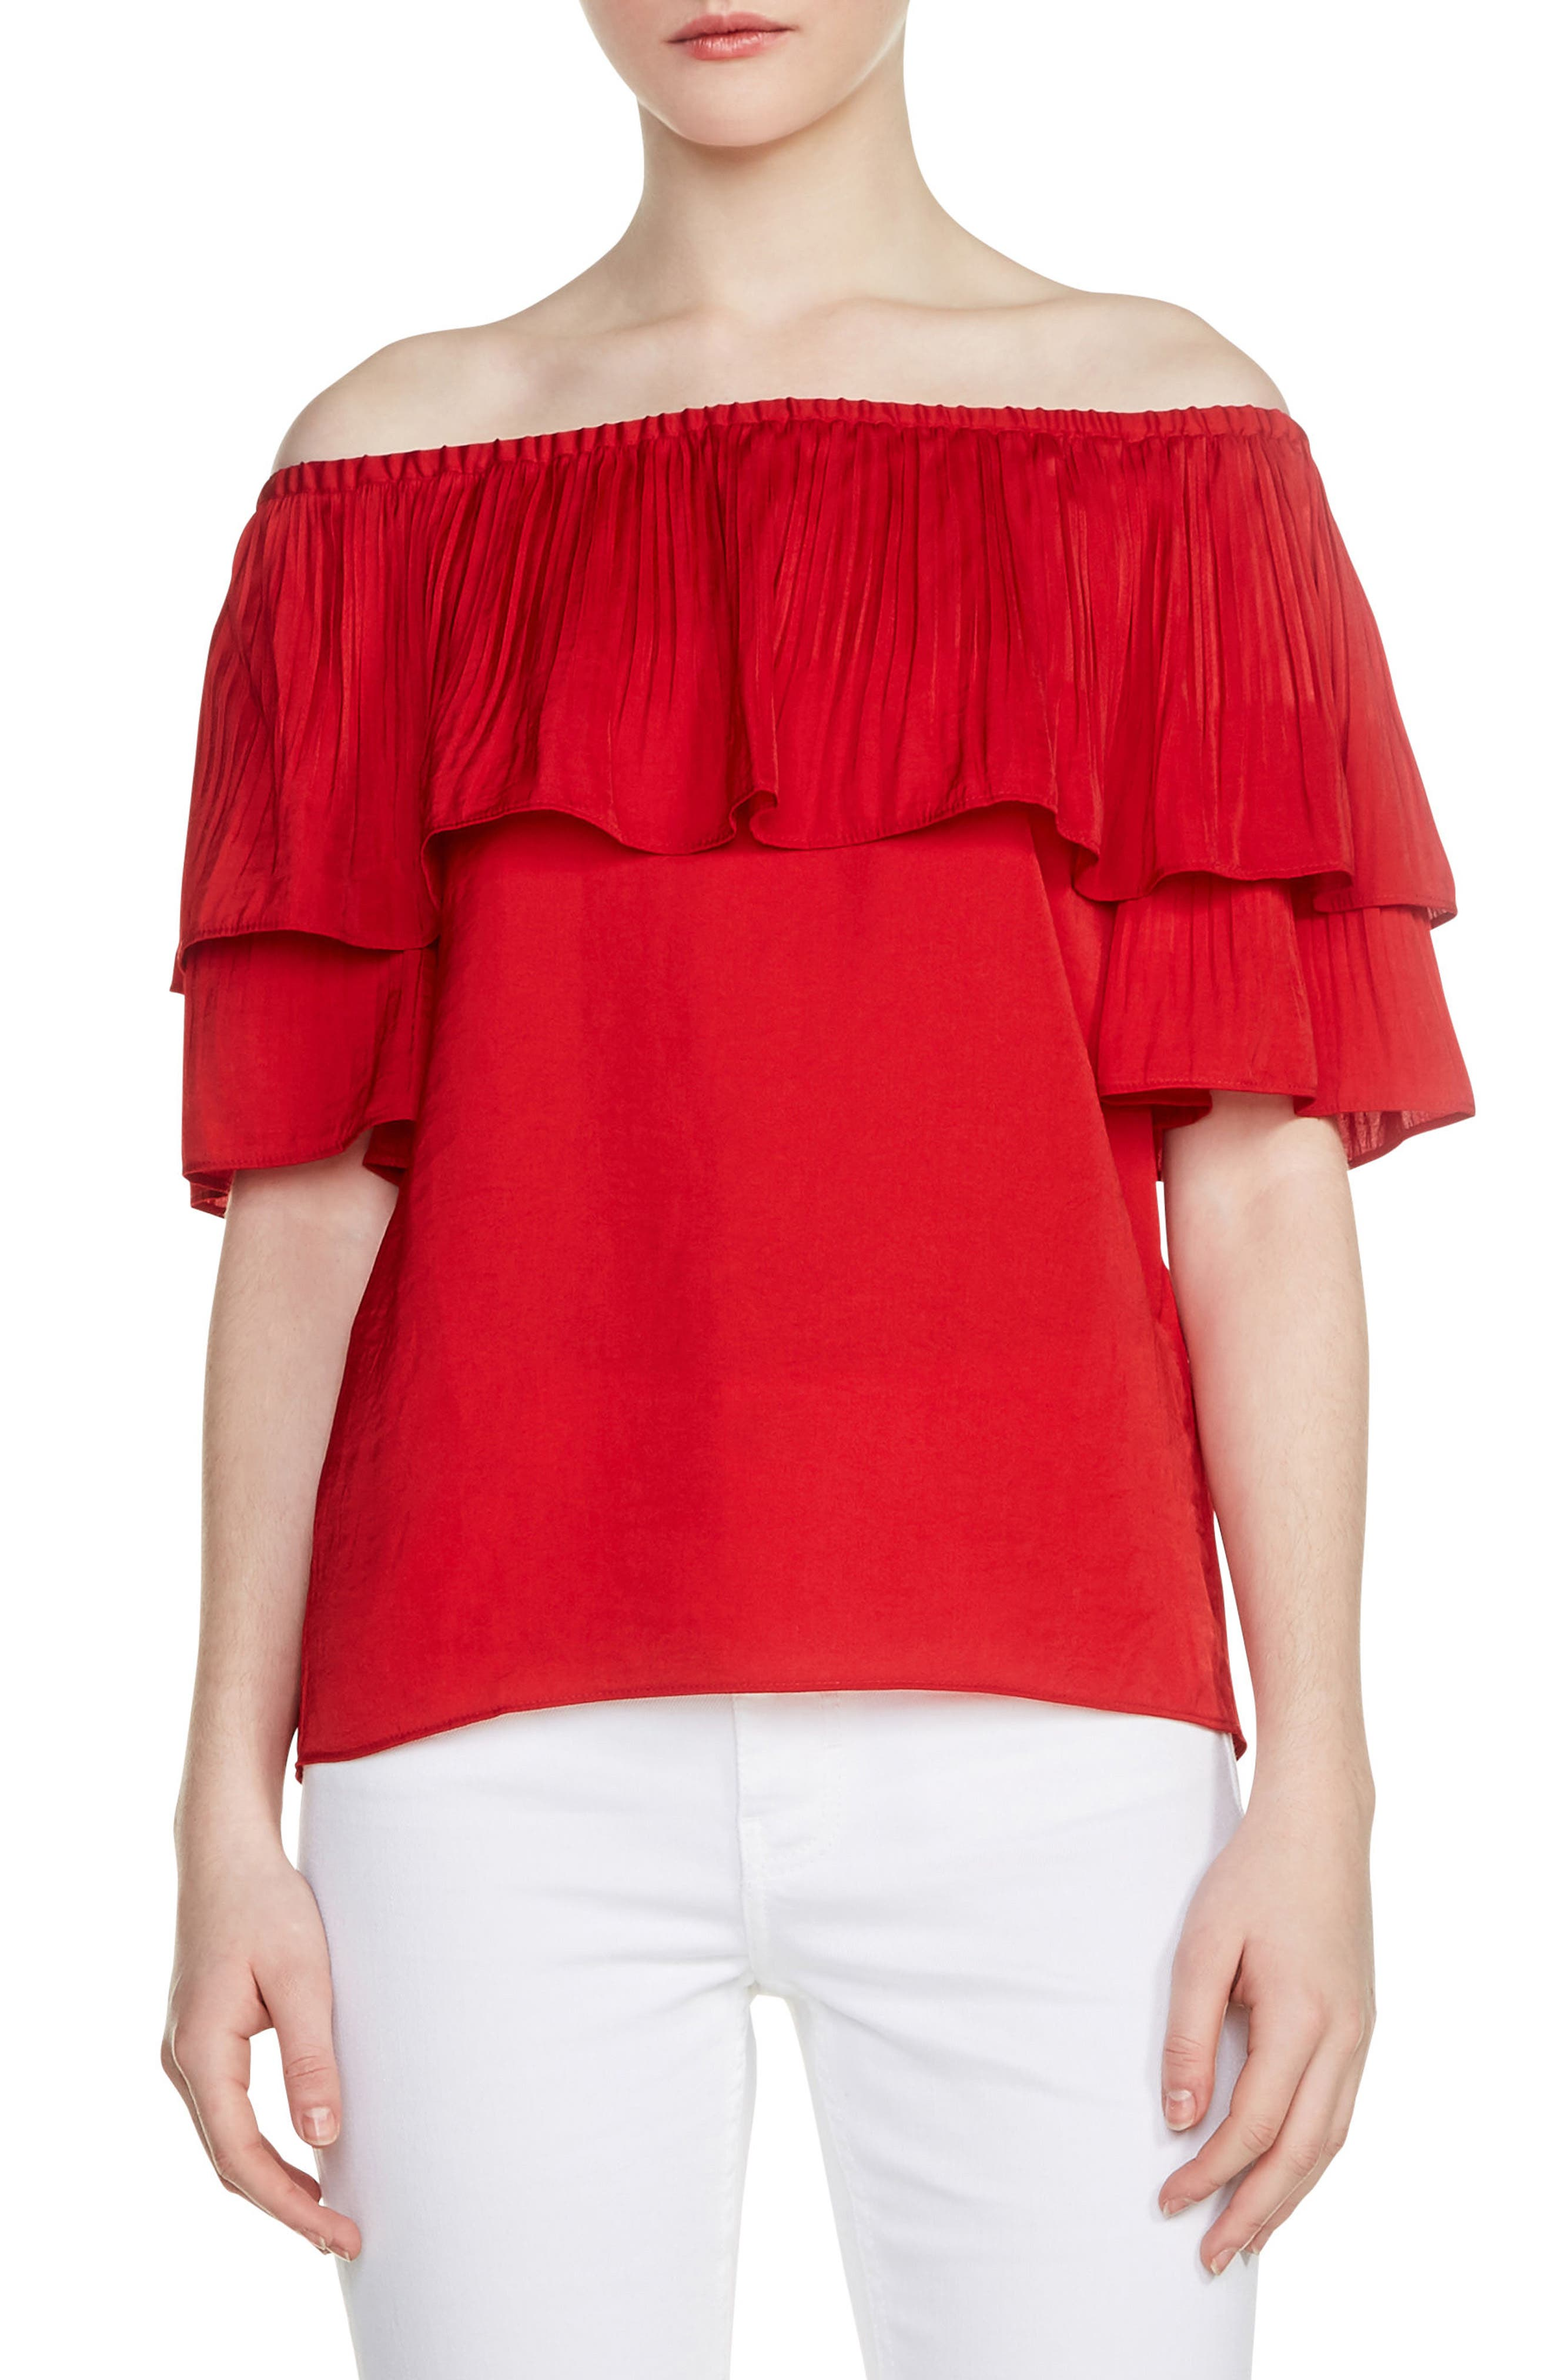 Locao Off the Shoulder Top,                             Main thumbnail 1, color,                             600